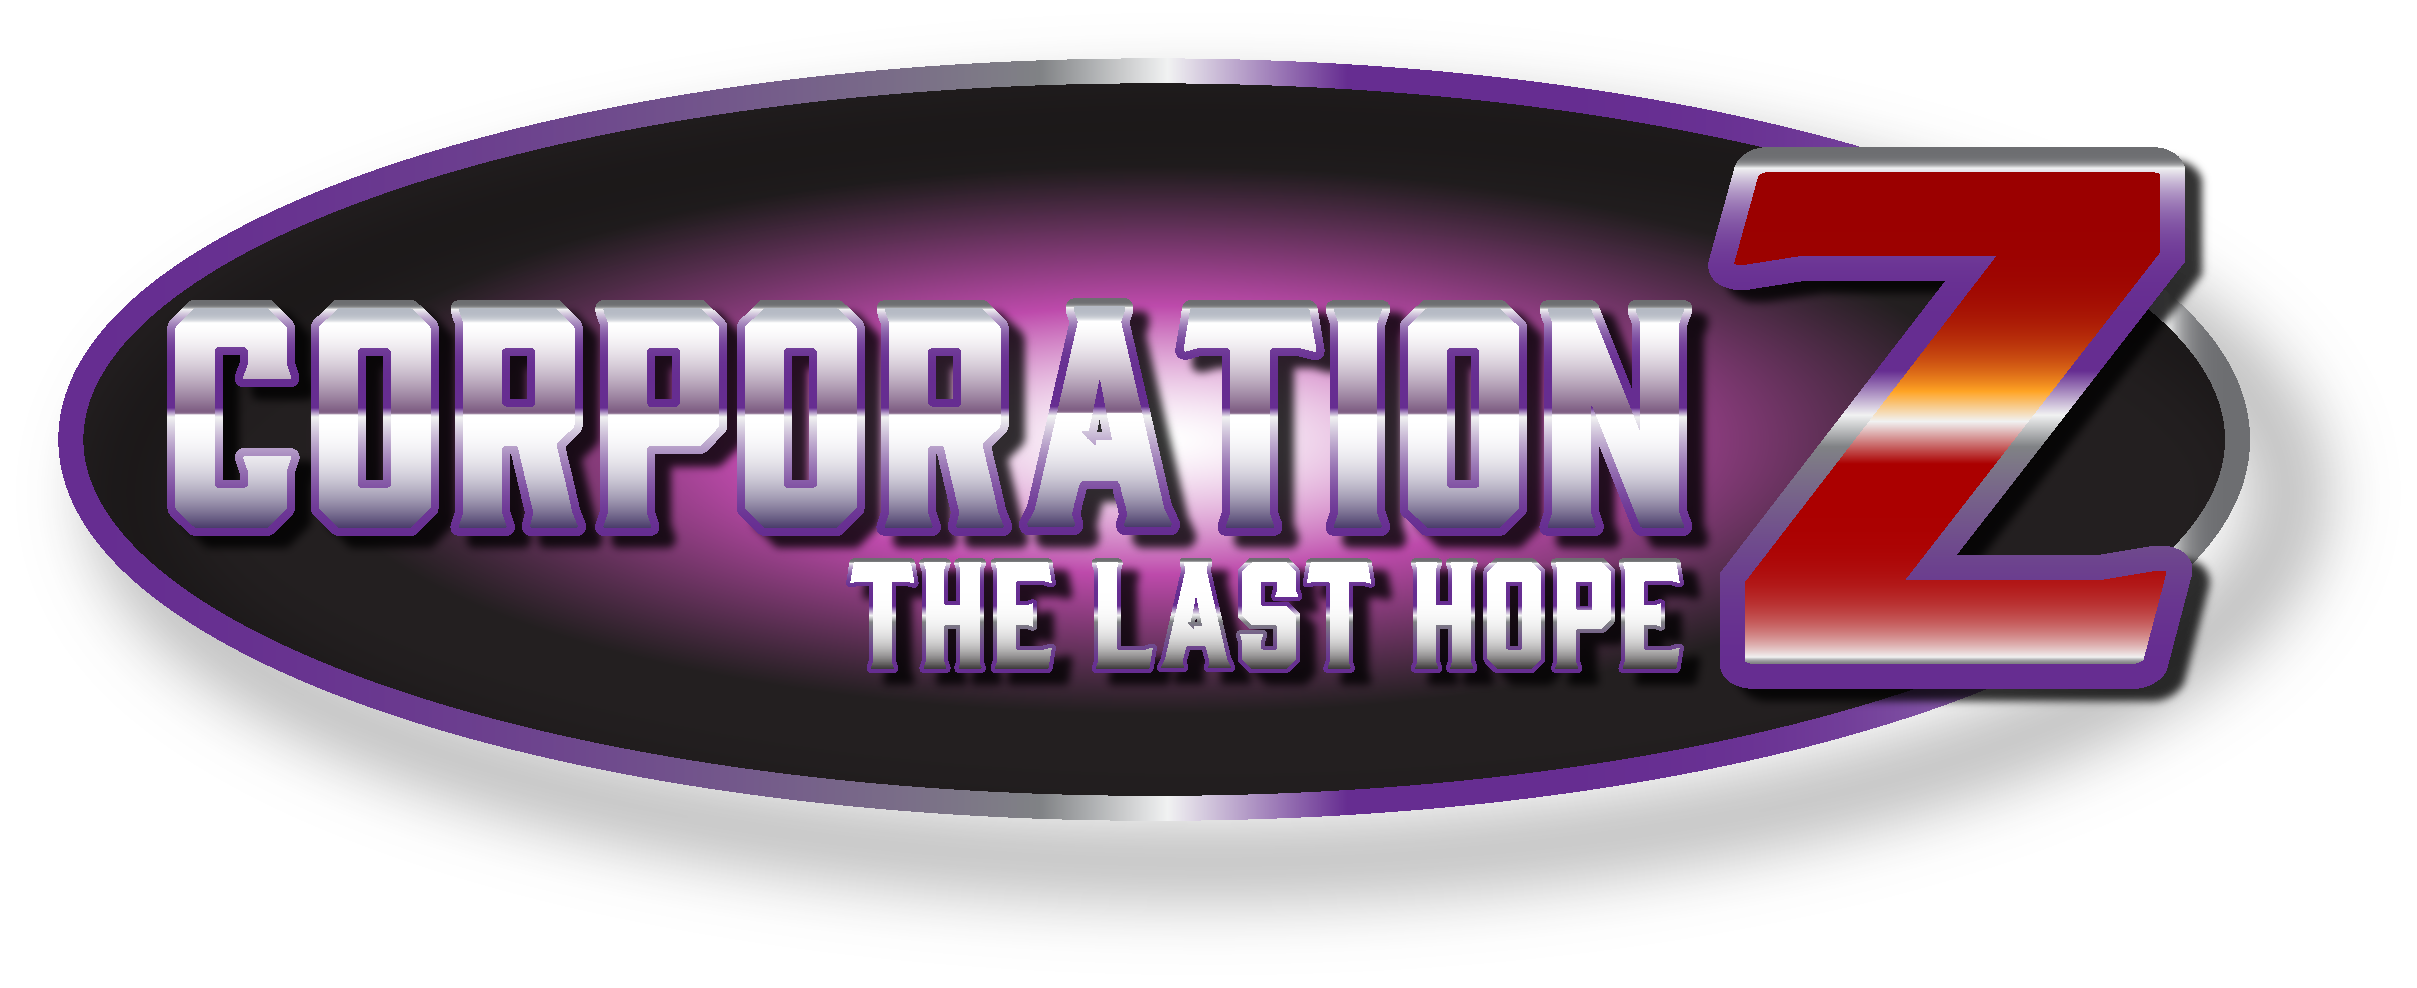 CORPORATION Z : THE LAST HOPE